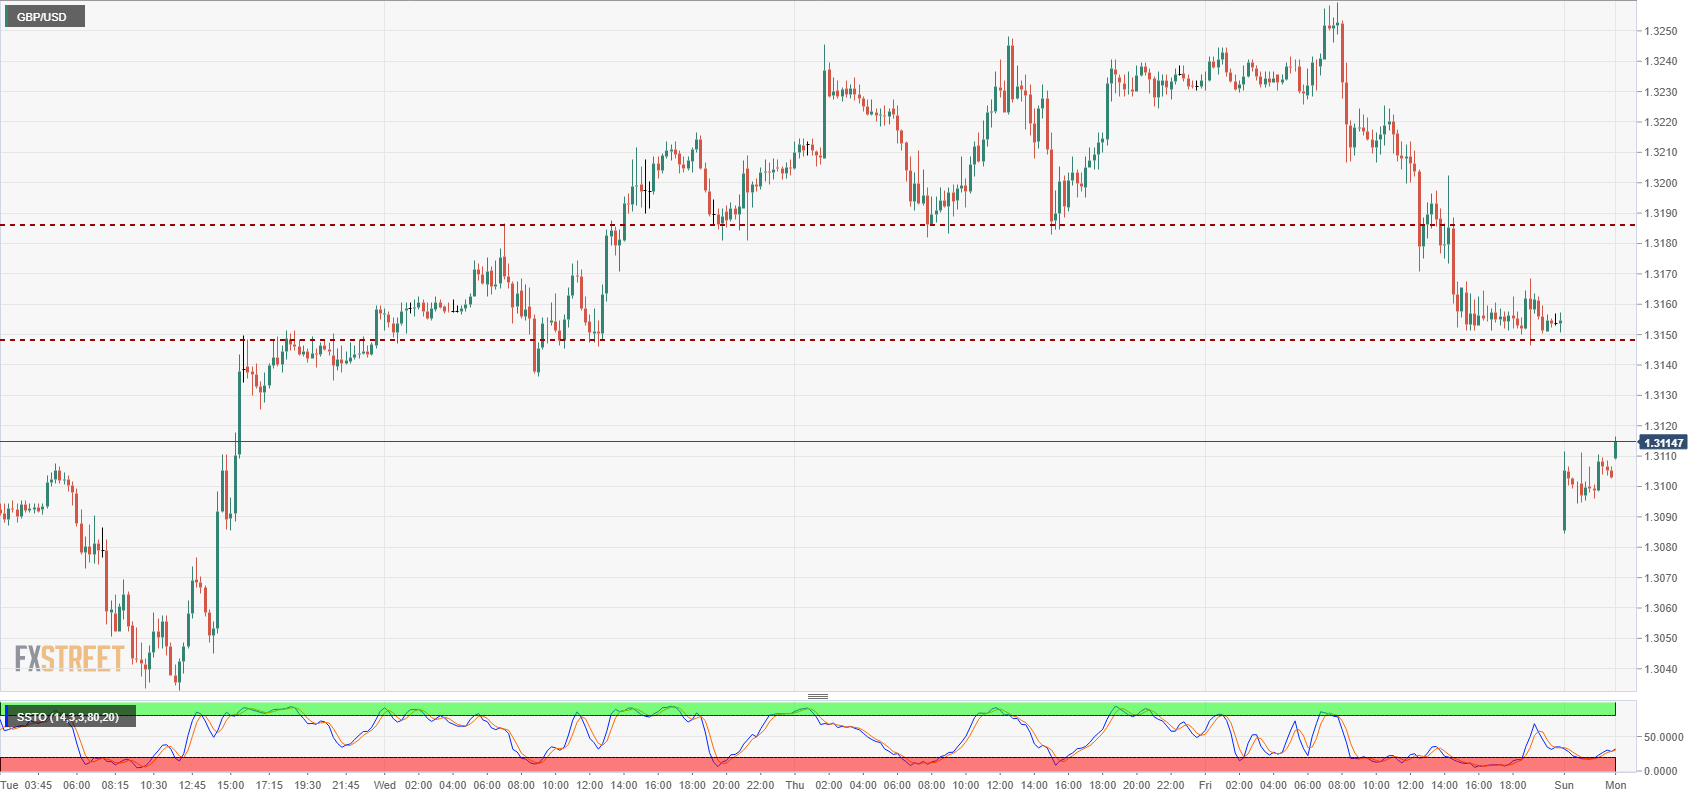 GBP USD Technical Analysis Bulls Having Little Effect Clawing Back From Opening Gap Into 13100